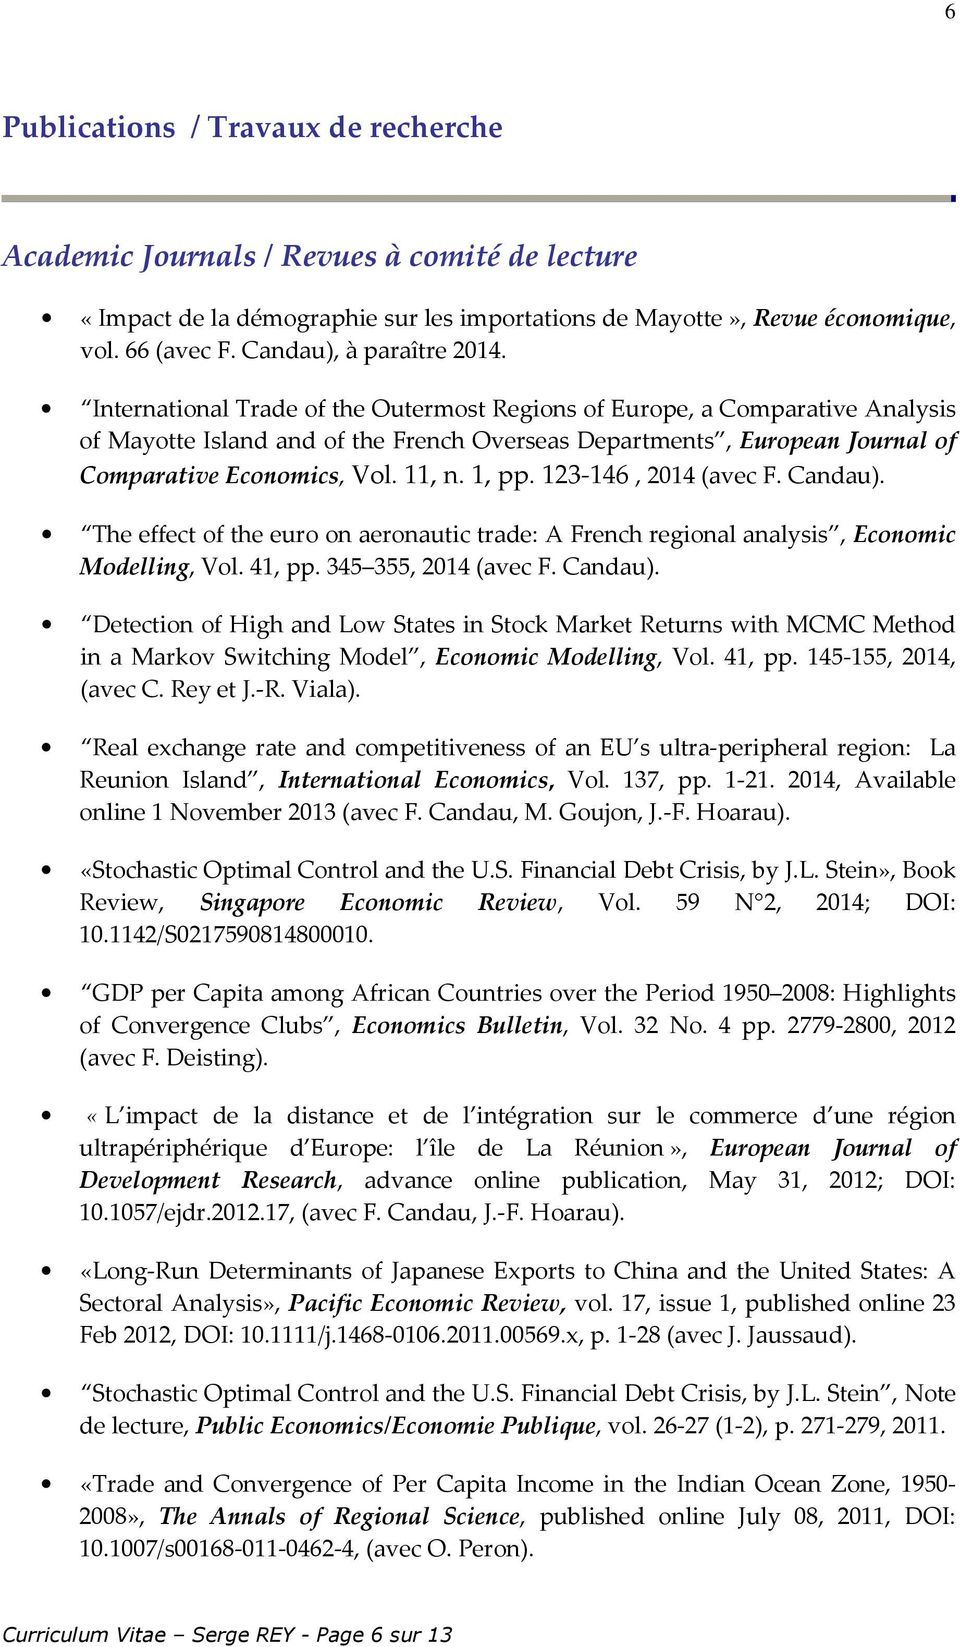 International Trade of the Outermost Regions of Europe, a Comparative Analysis of Mayotte Island and of the French Overseas Departments, European Journal of Comparative Economics, Vol. 11, n. 1, pp.